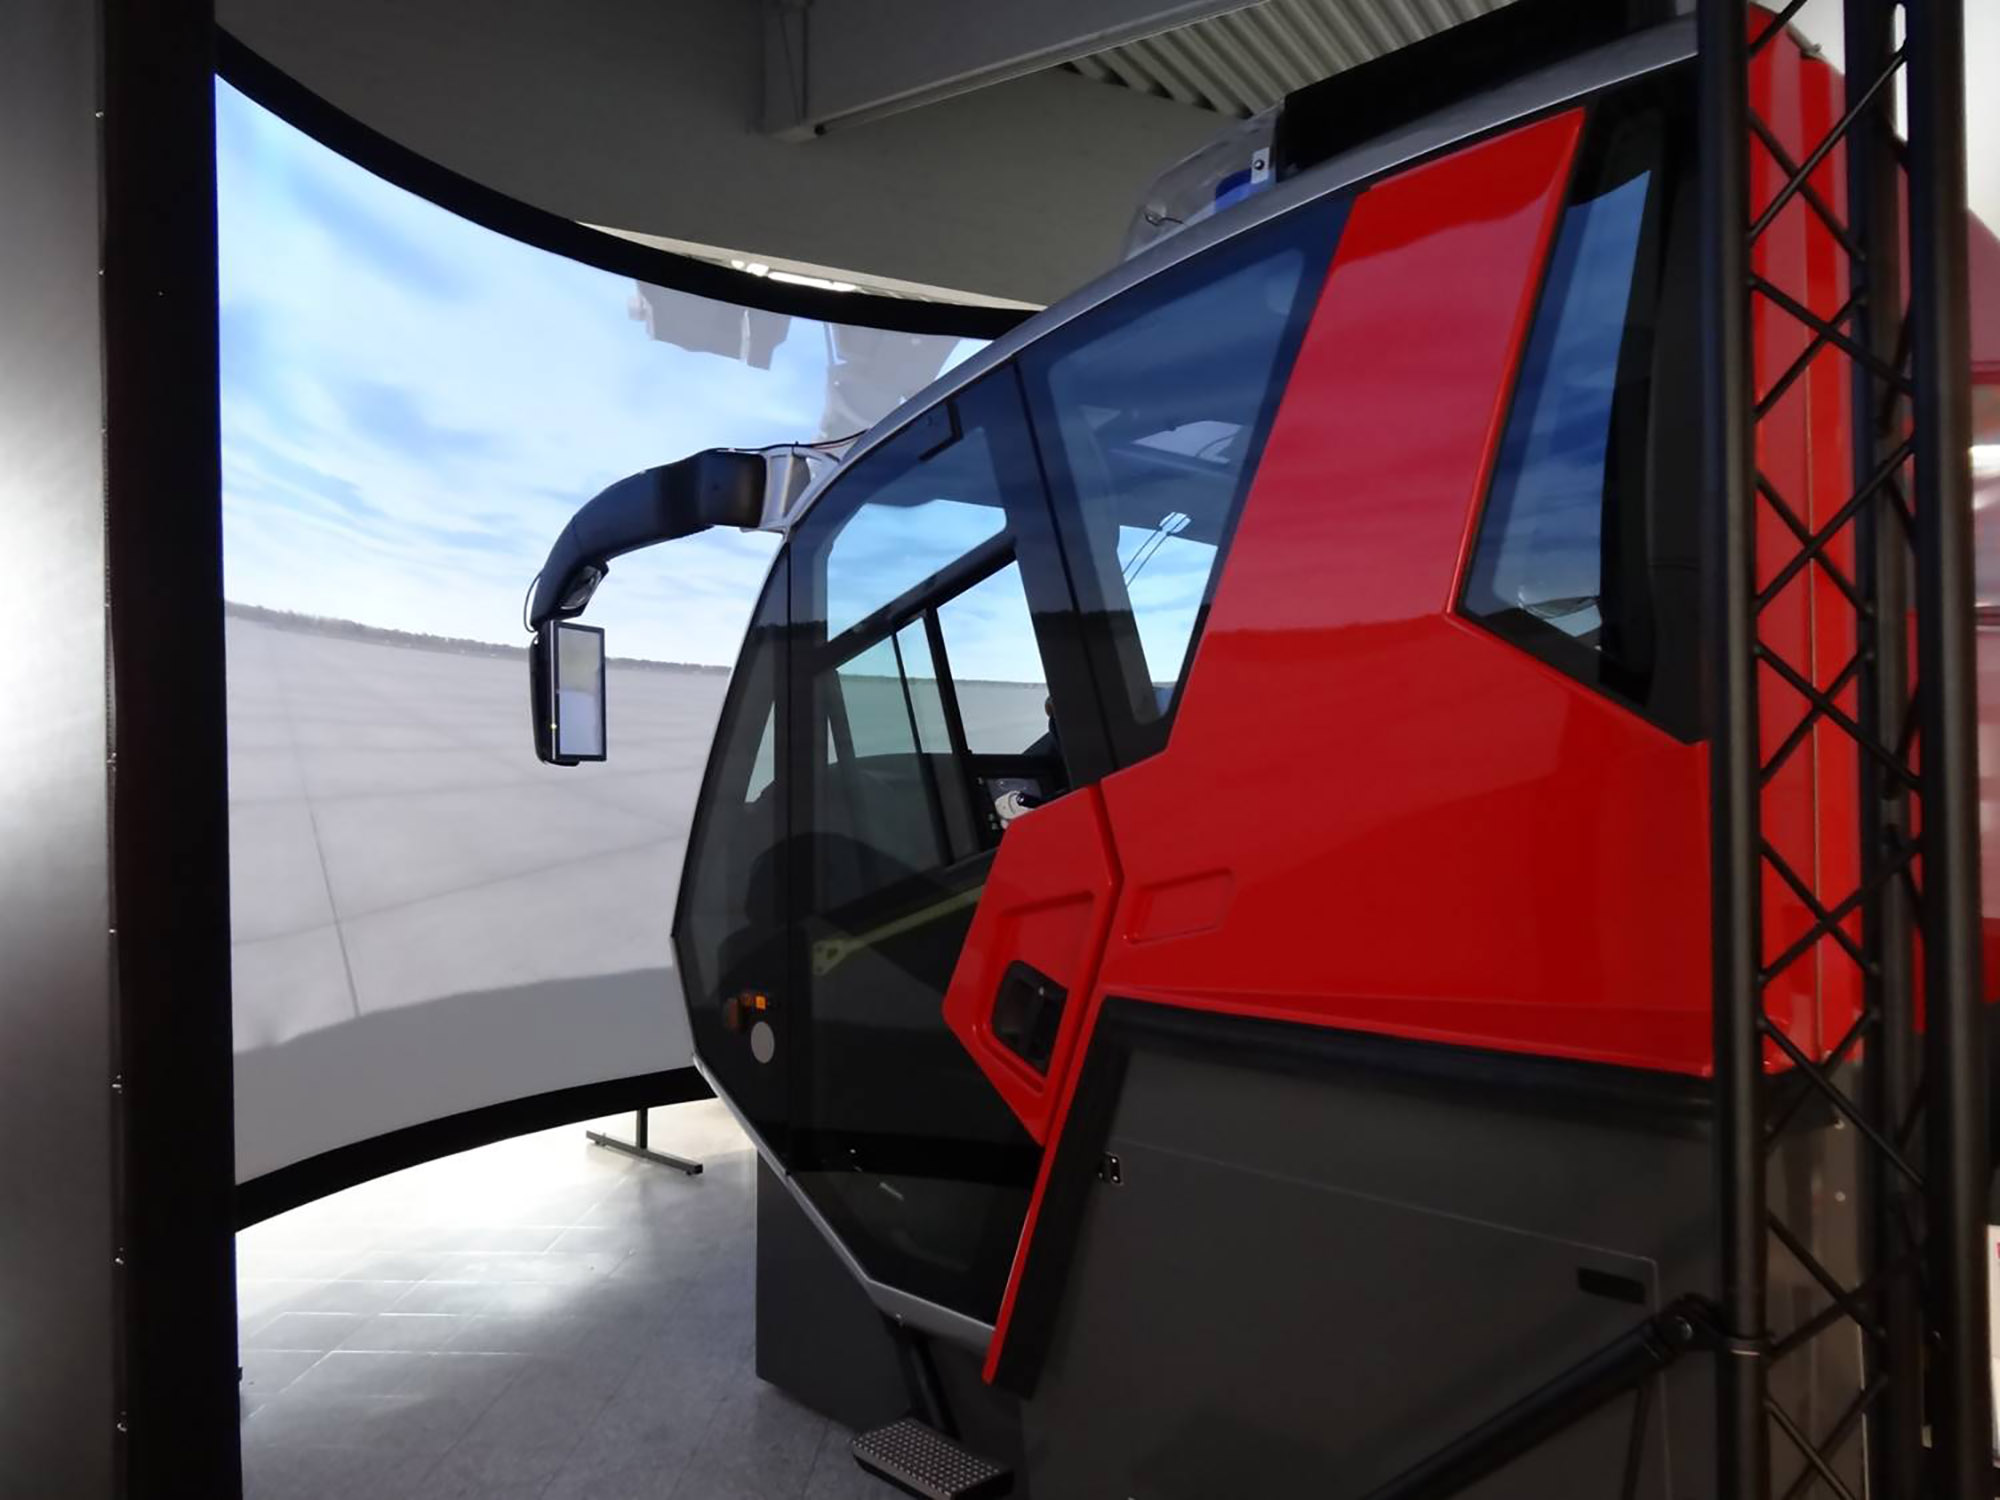 Full-sized Rosenbauer Panther Cabin with a 210-degree projection screen for full immersion to train ARFF Operations.